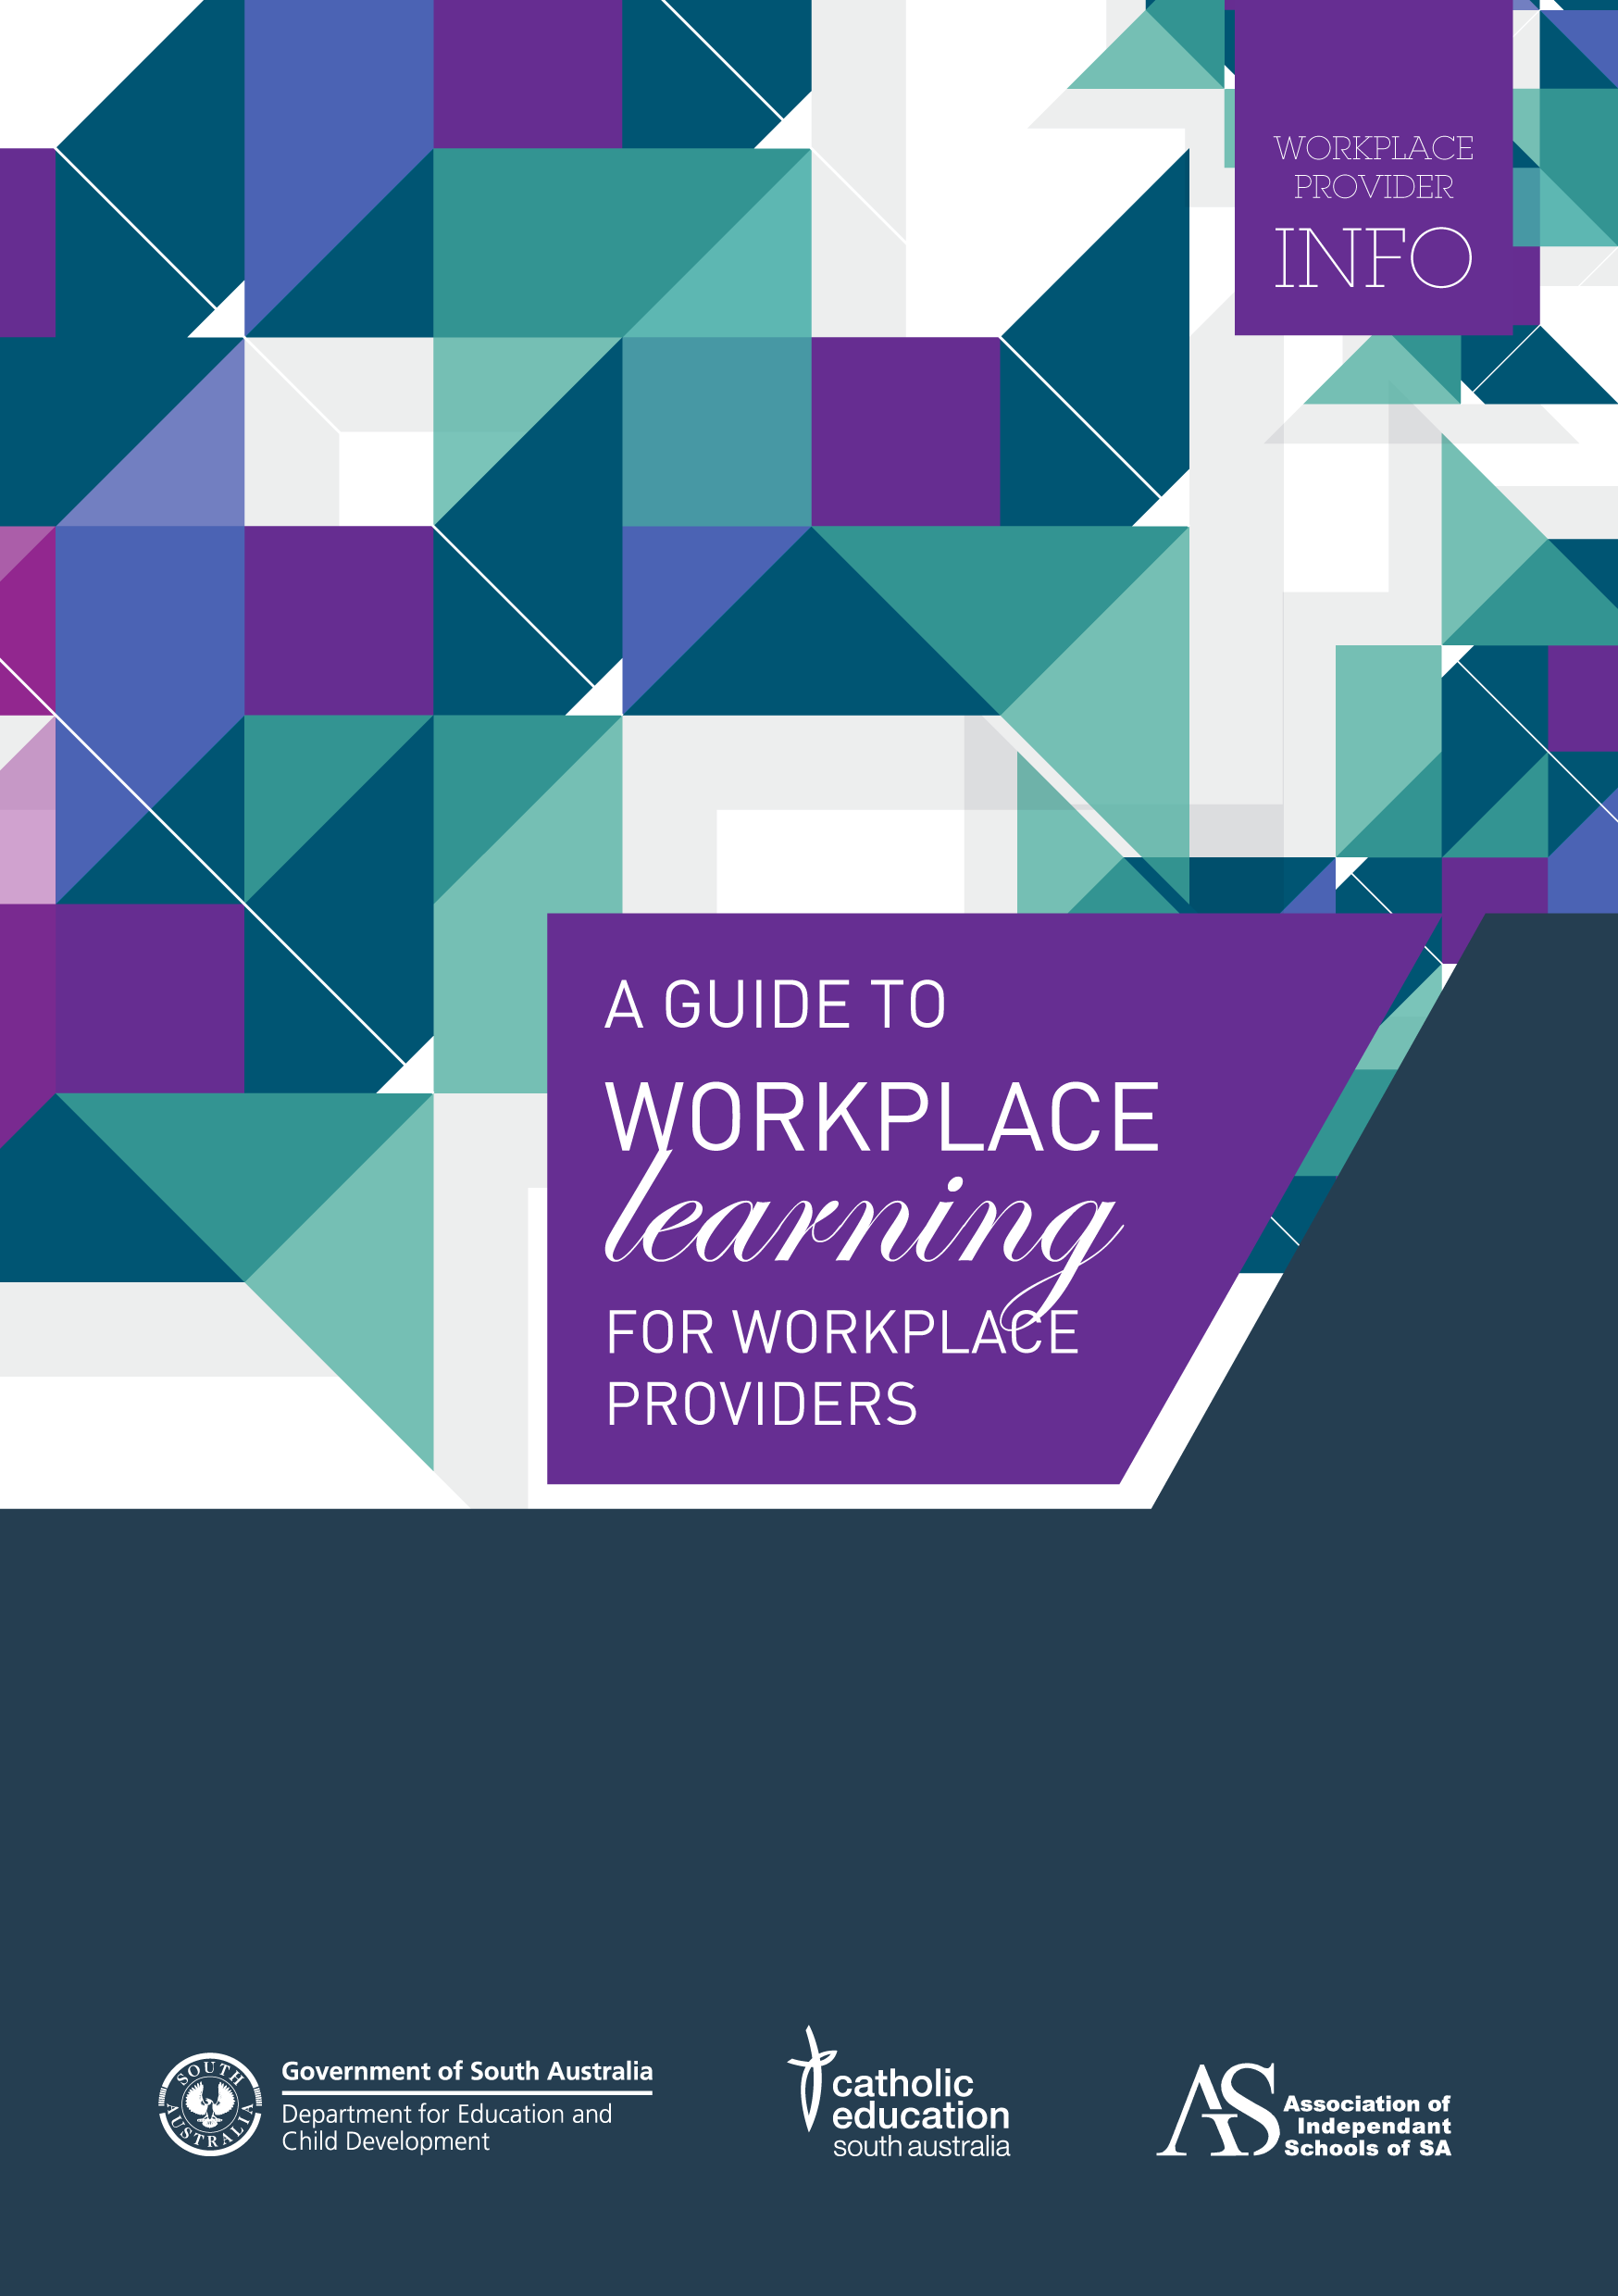 Guide to workplace learning for workplace providers and employers